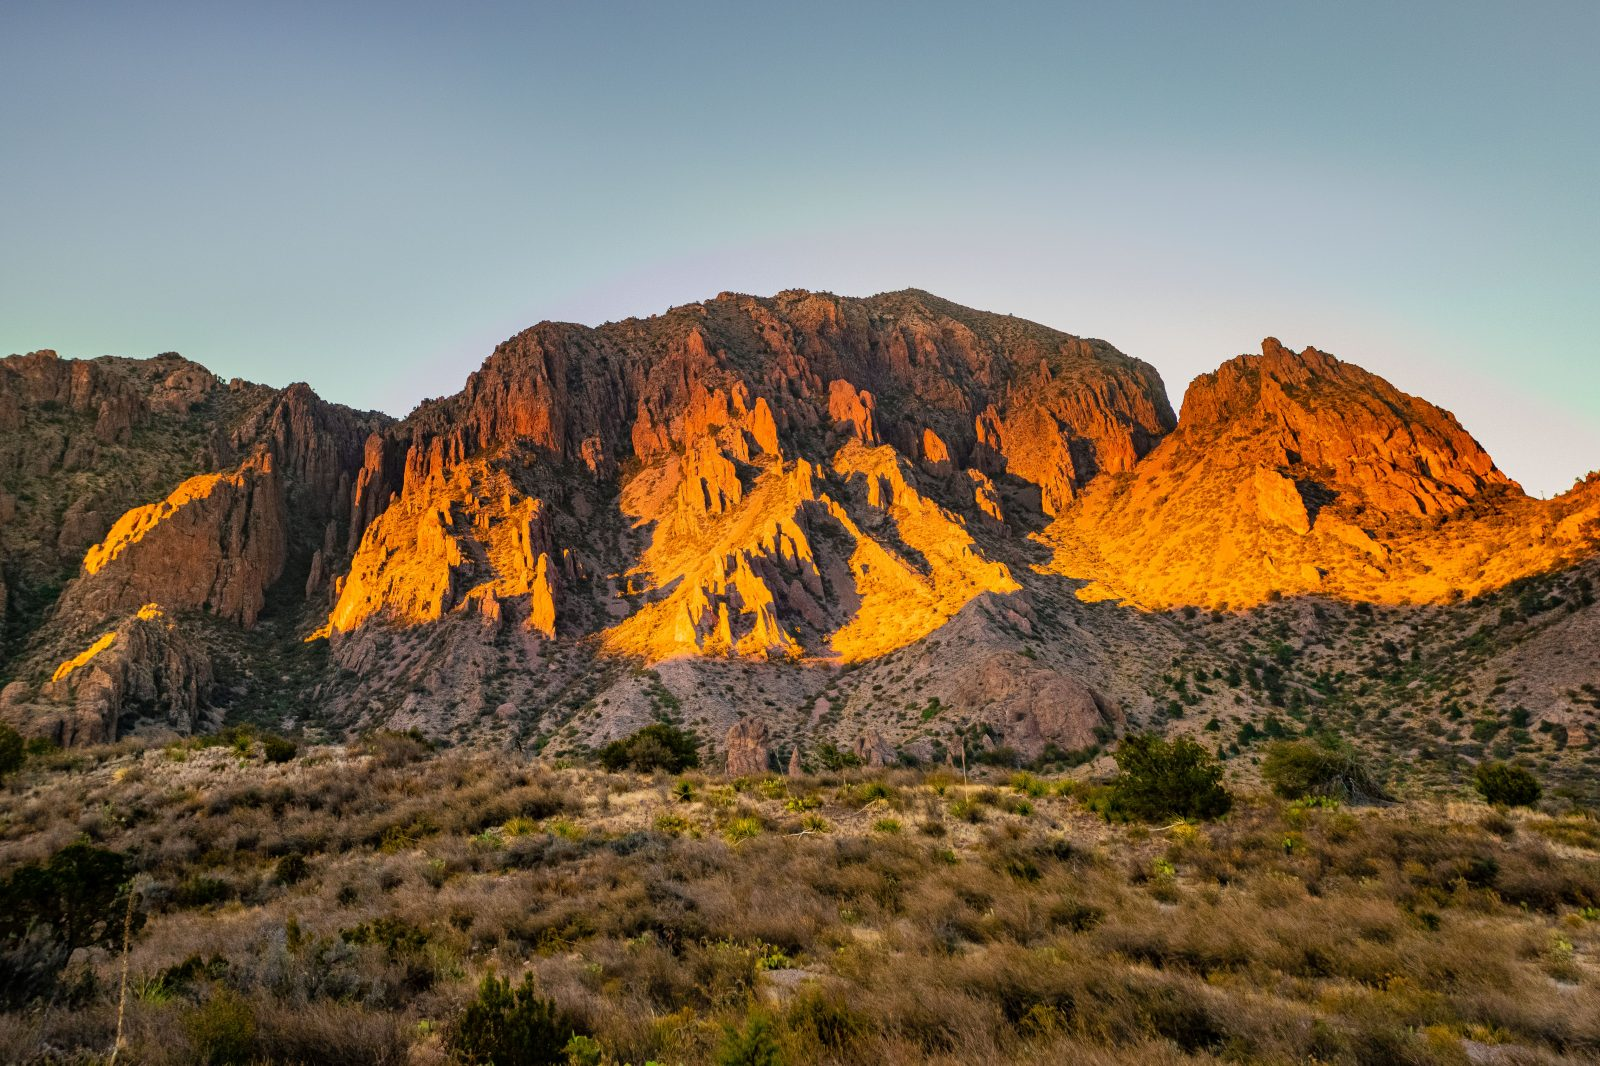 Sunset on the Chisos